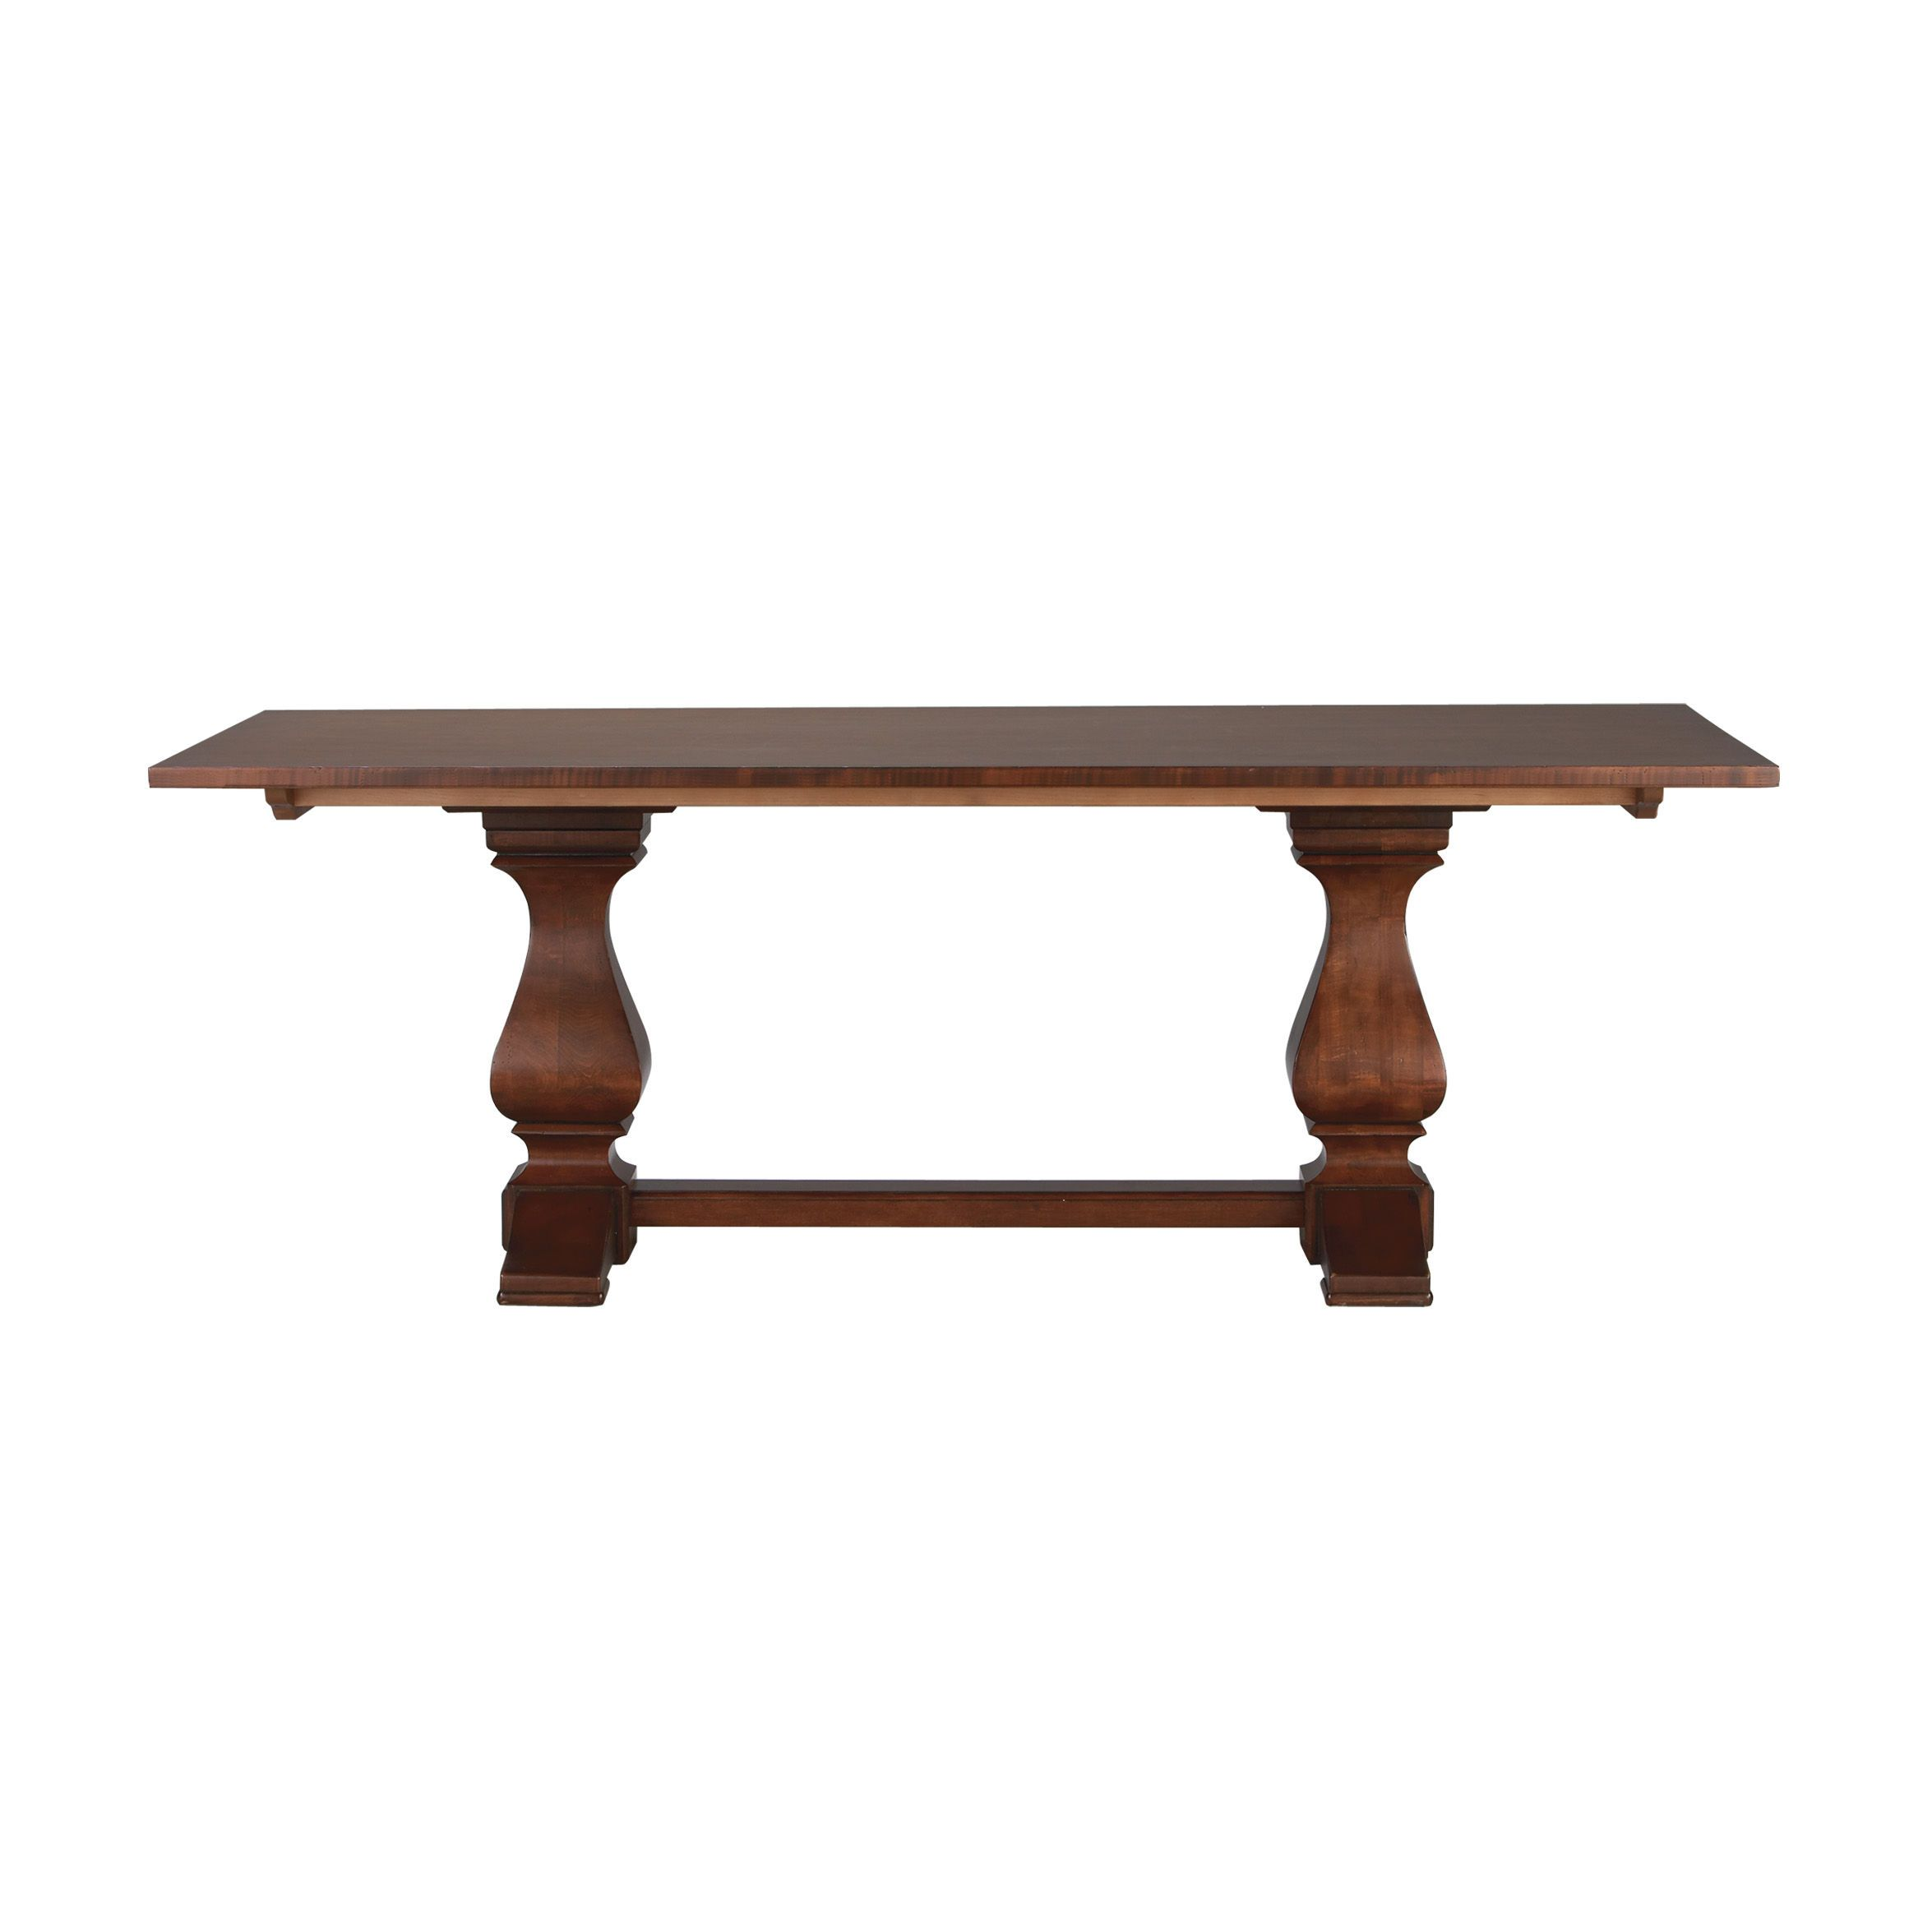 Cameron Dining Table Ethan Allen US Home ESD living kitchen